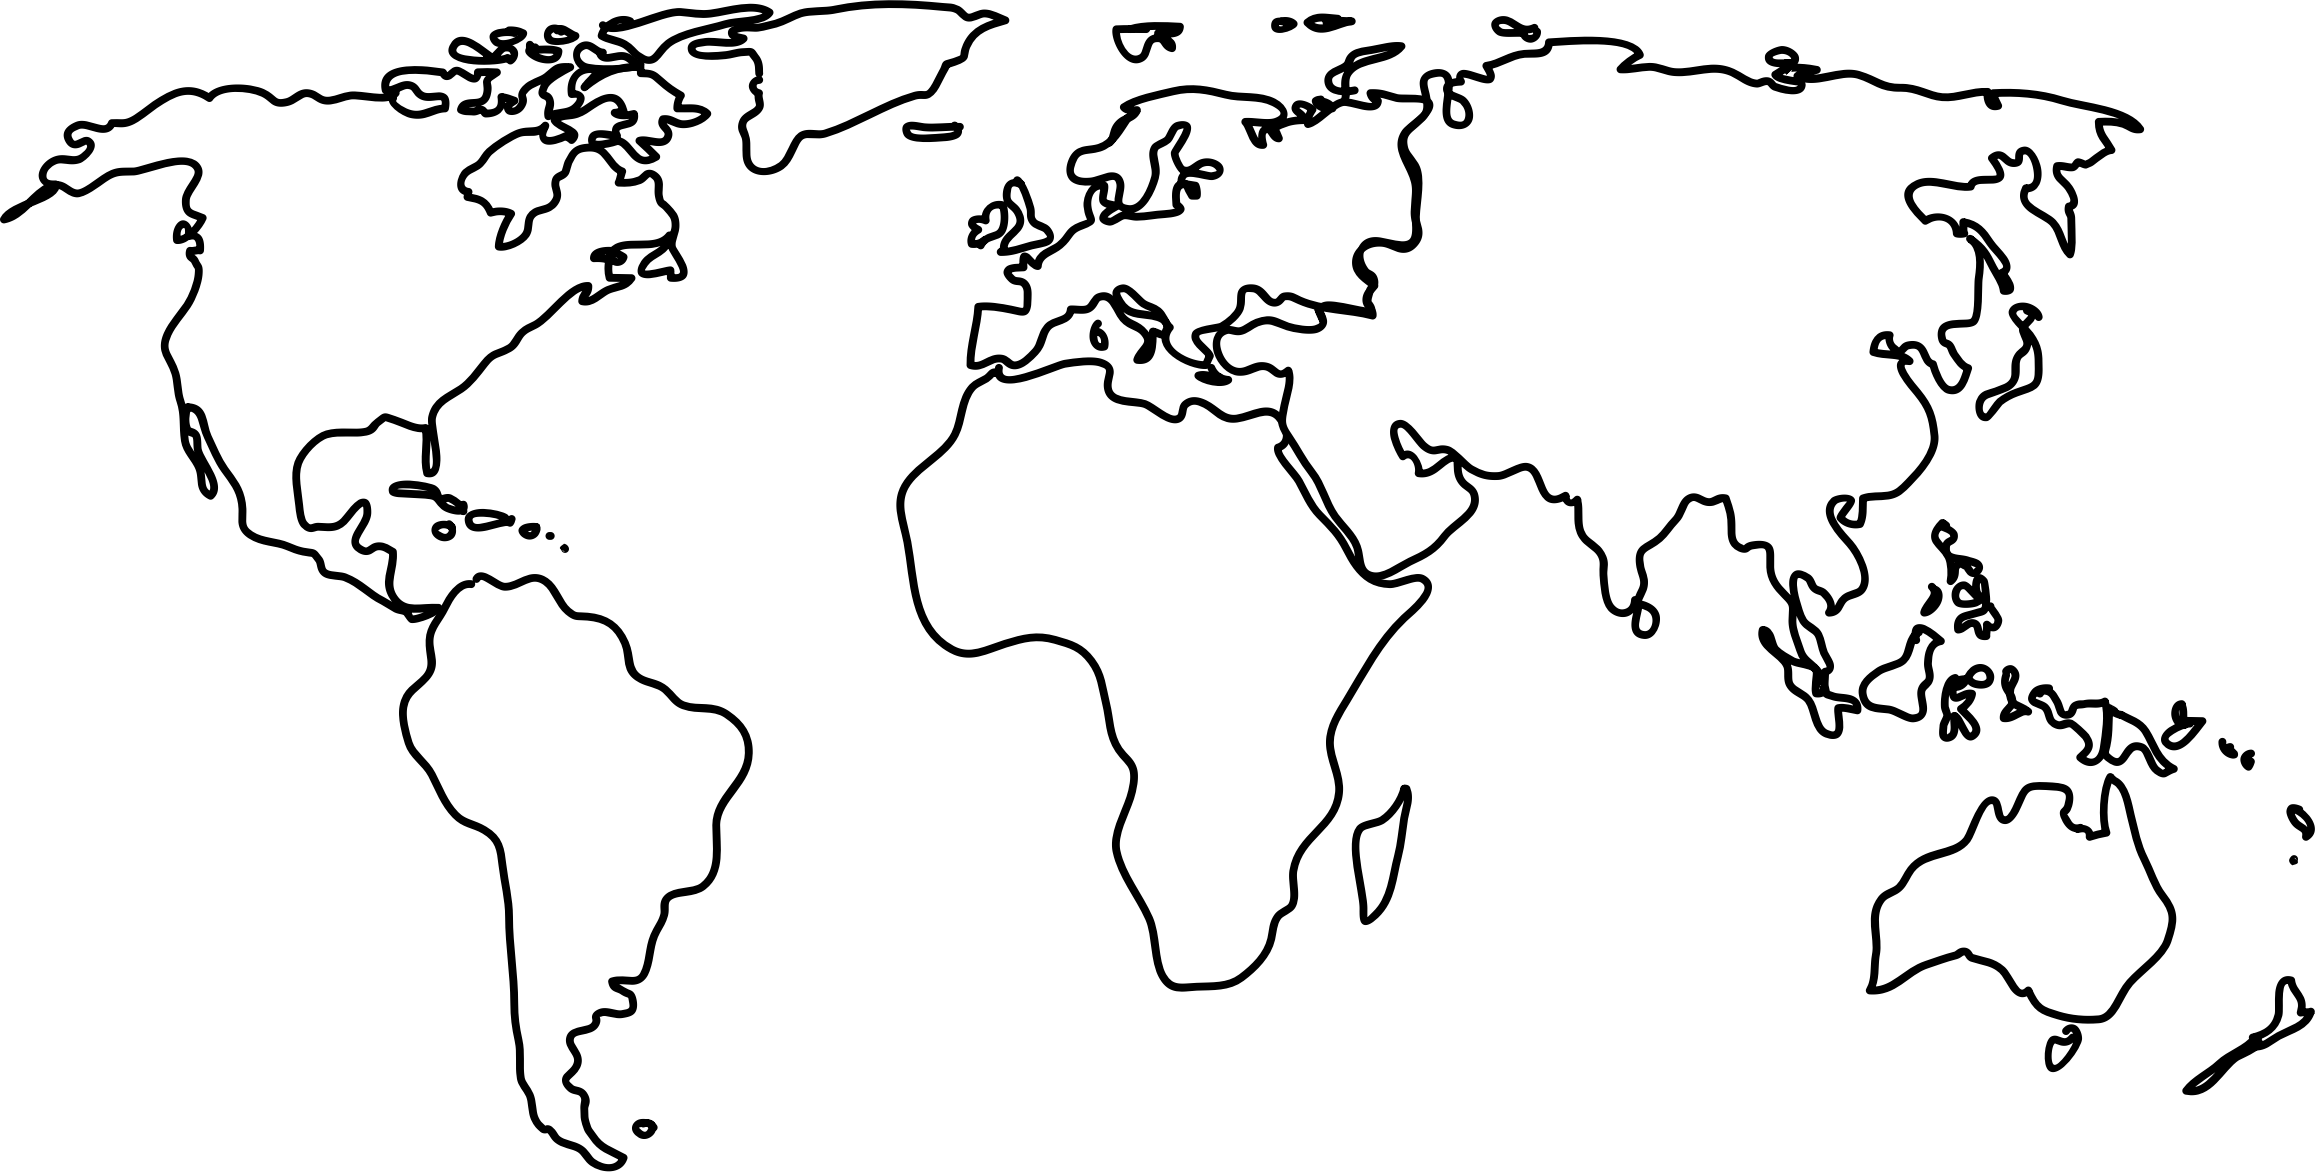 Country Map Clipart Black And White Clipground - World map outline with countries